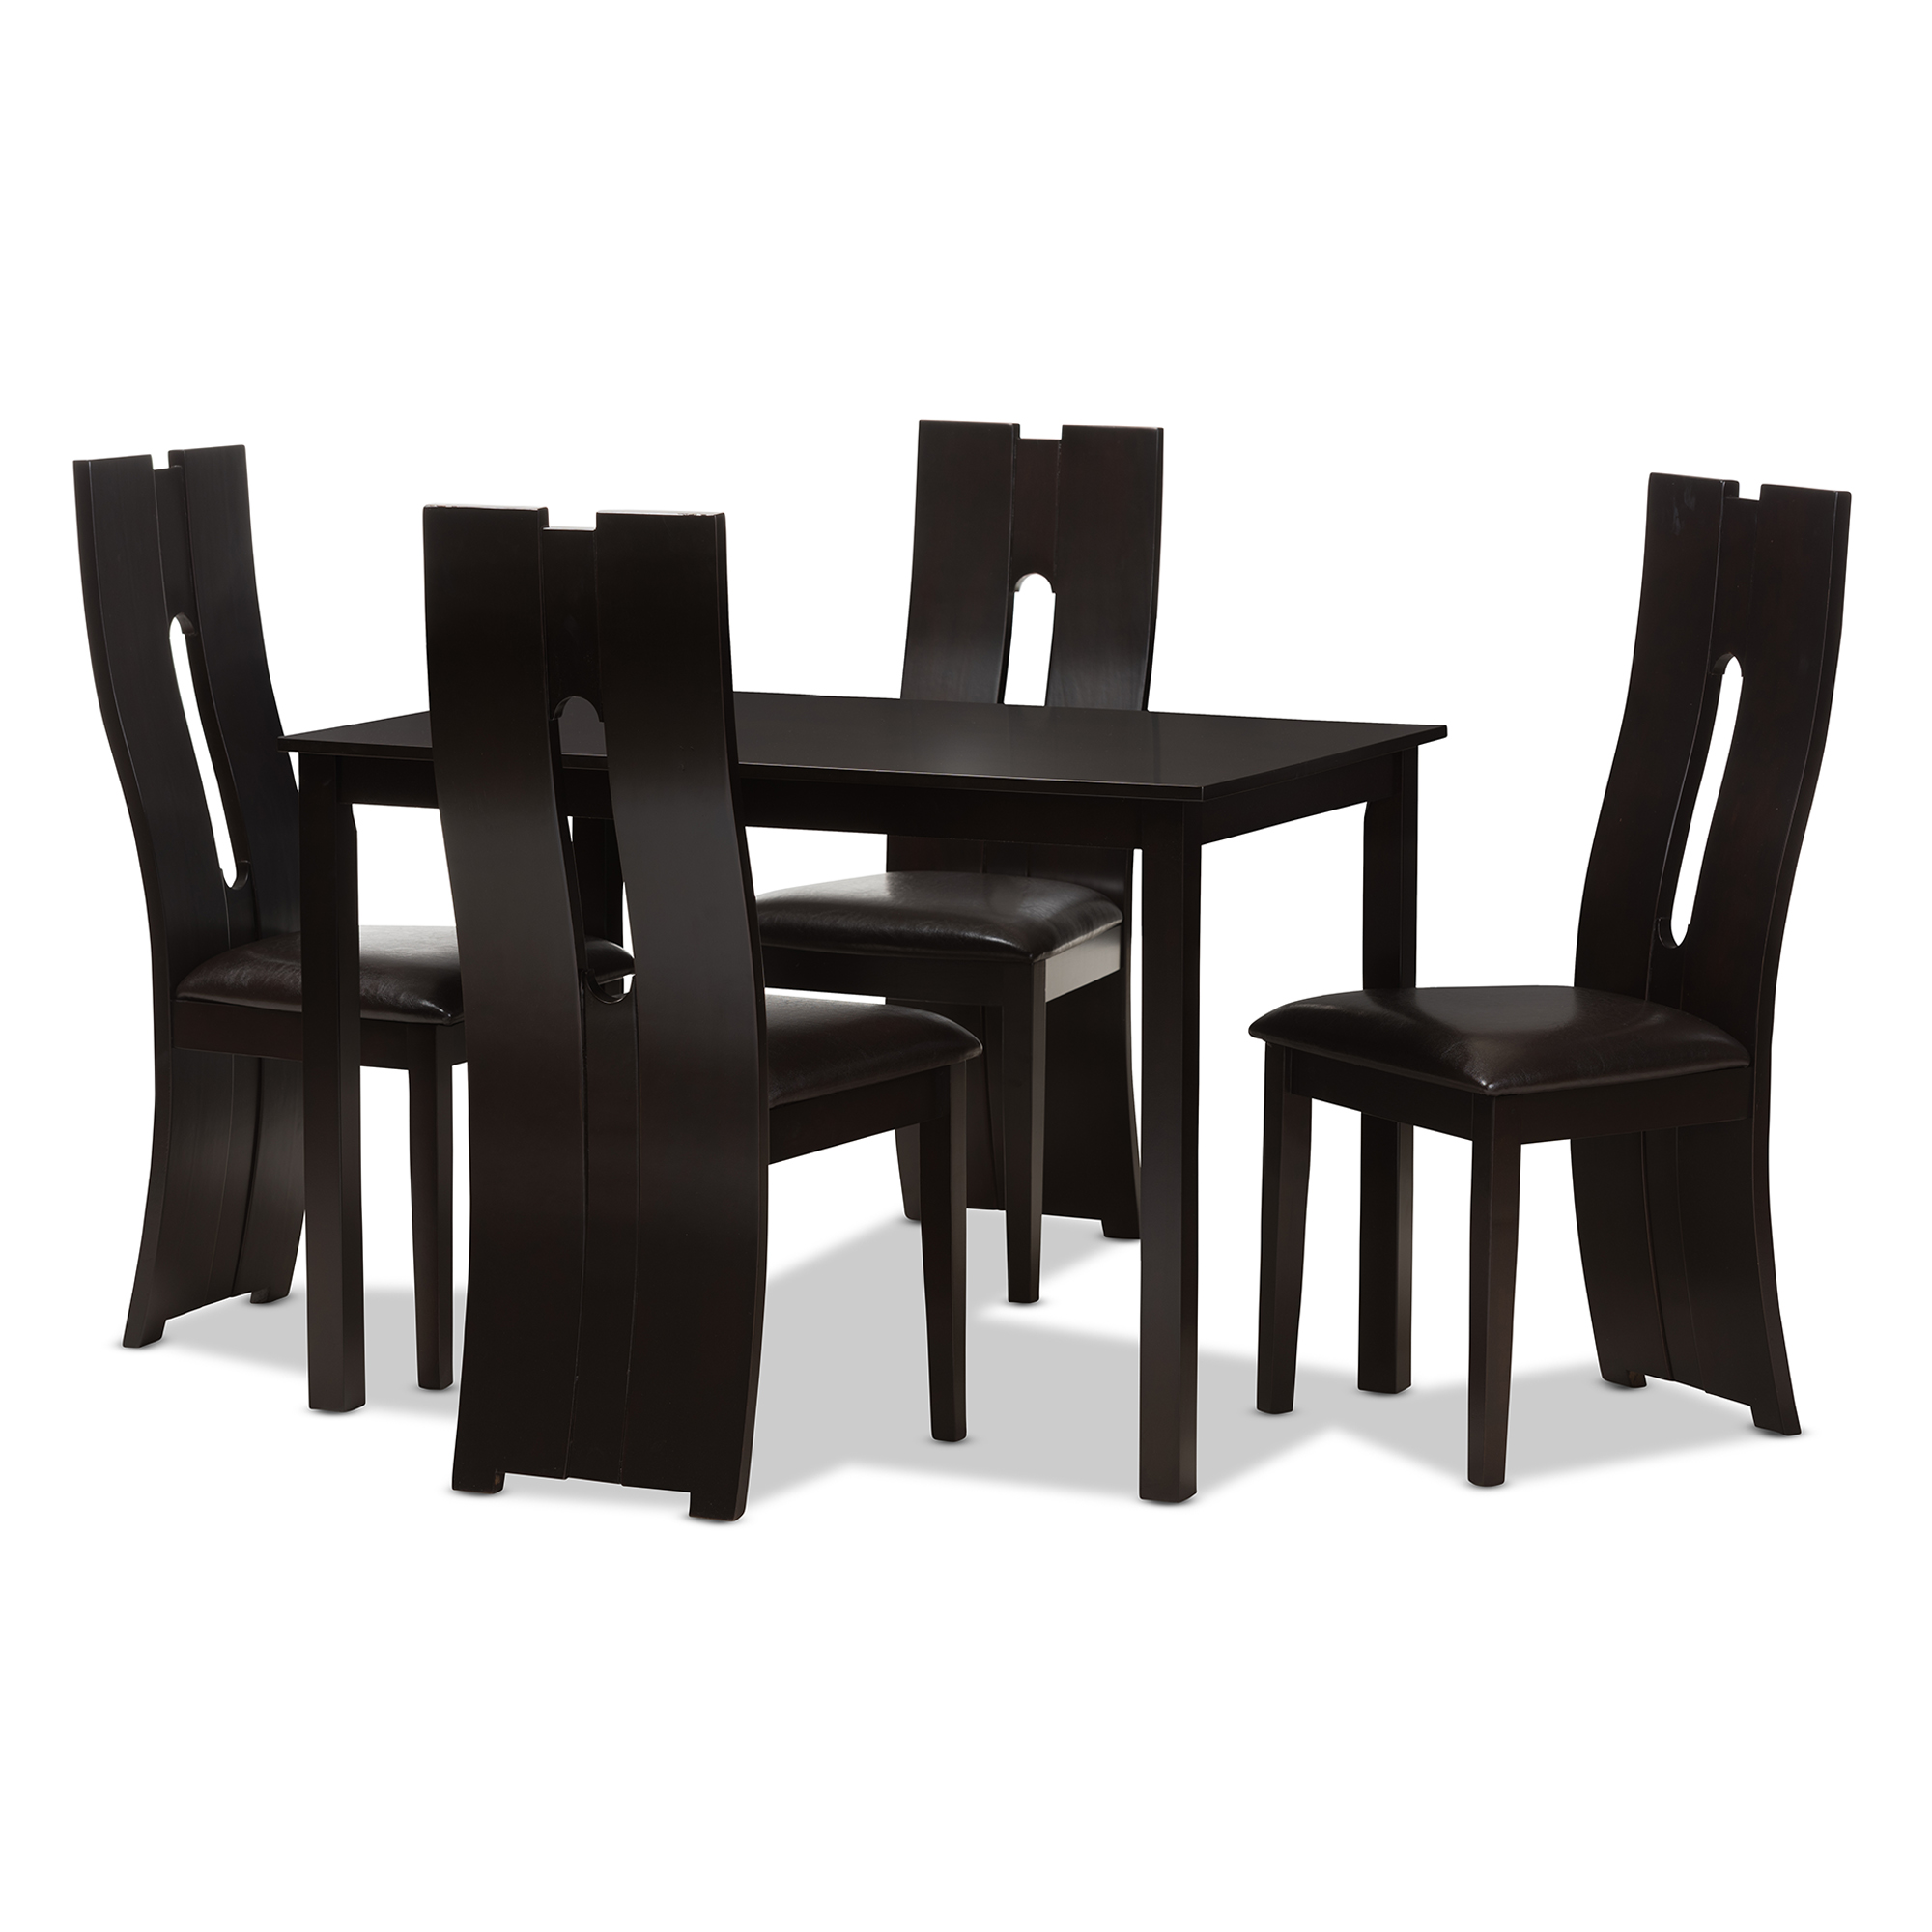 Baxton Studio Alani Modern And Contemporary Dark Brown Faux Leather  Upholstered 5 Piece Dining Set